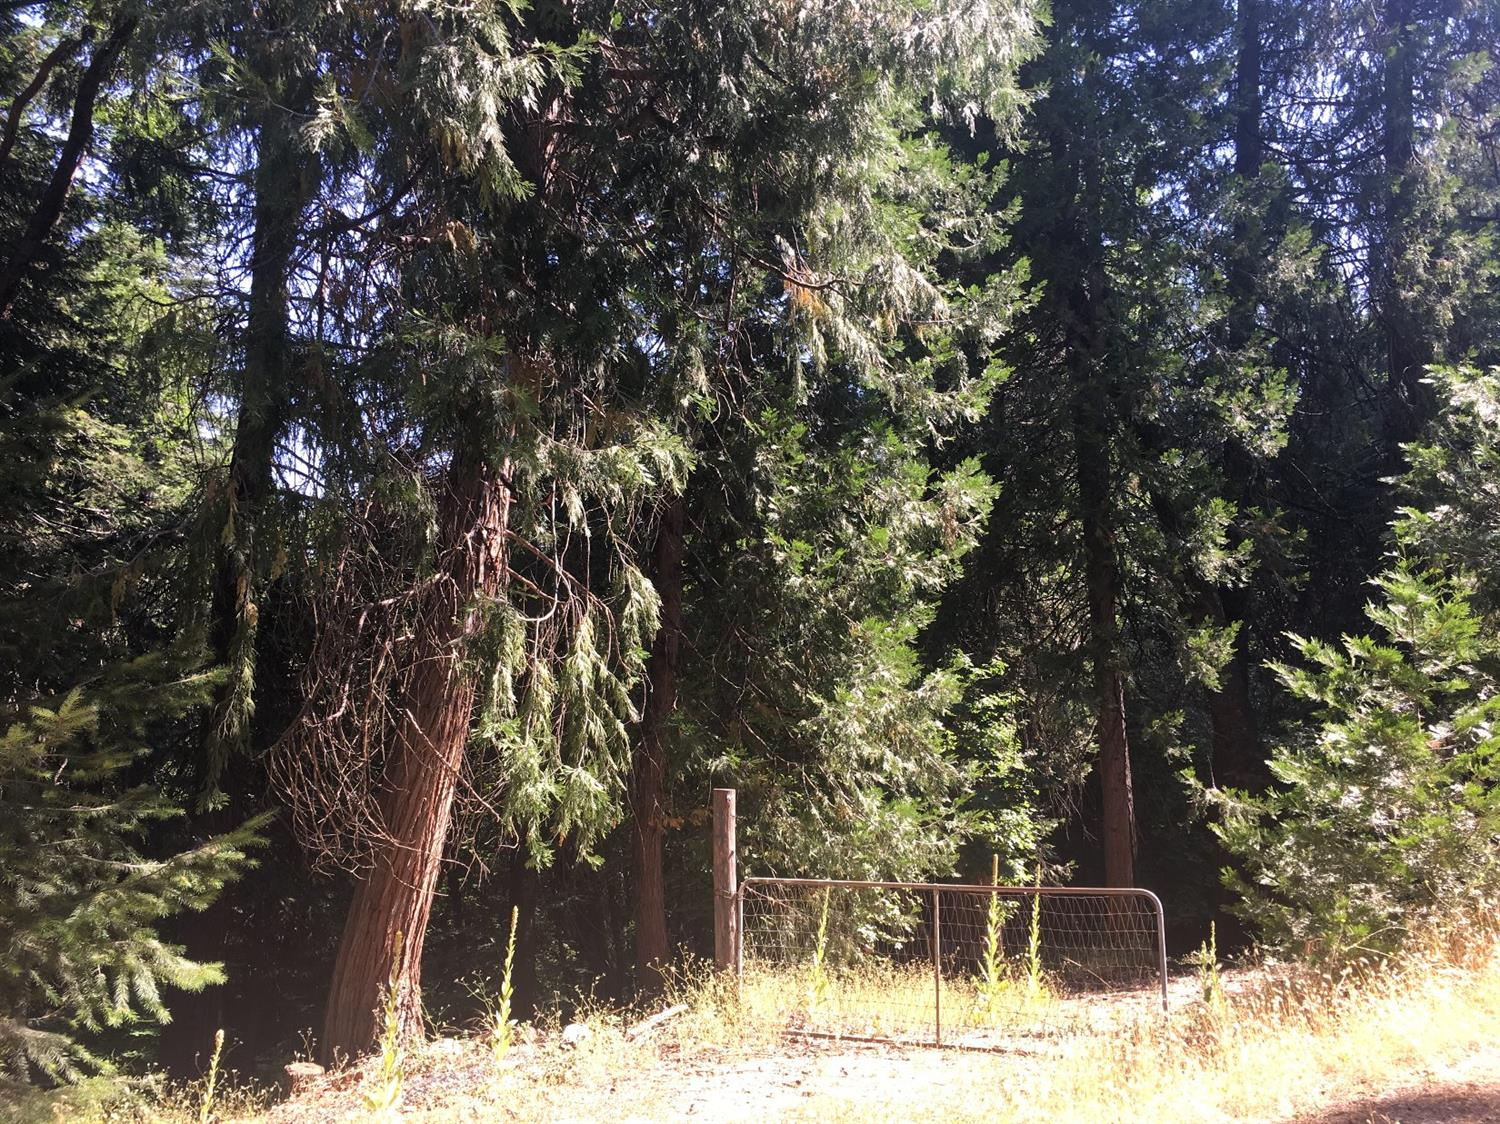 BUILD YOUR DREAM HOME ON THIS BEAUTIFUL 3 ACRES IN CAMINO WITH WATER METER IN AND PAID FOR. SPECTAUCLAR MATURE PINES AND OAKS MAKE THIS A VERY PRIVATE LOT. EASY ACCESS GATE AND FUN TRAIL CUT TO TRAVERSE THE LAND. WONDERFUL LOCATION AMONG EL DORADO COUNTY AGRICULTURE, APPLES, CHRISTMAS TREES AND WINERIES JUST MINUTES TO HIGHWAY 50. ALSO, YOU'RE AN HOUR TO SKIING, AMAZING OUTDOOR ACTIVITIES AND SOUTH LAKE TAHOE. IF YOU'VE BEEN LOOKING FOR A SPECIAL PLACE TO CALL HOME LOOK NO FURTHER!